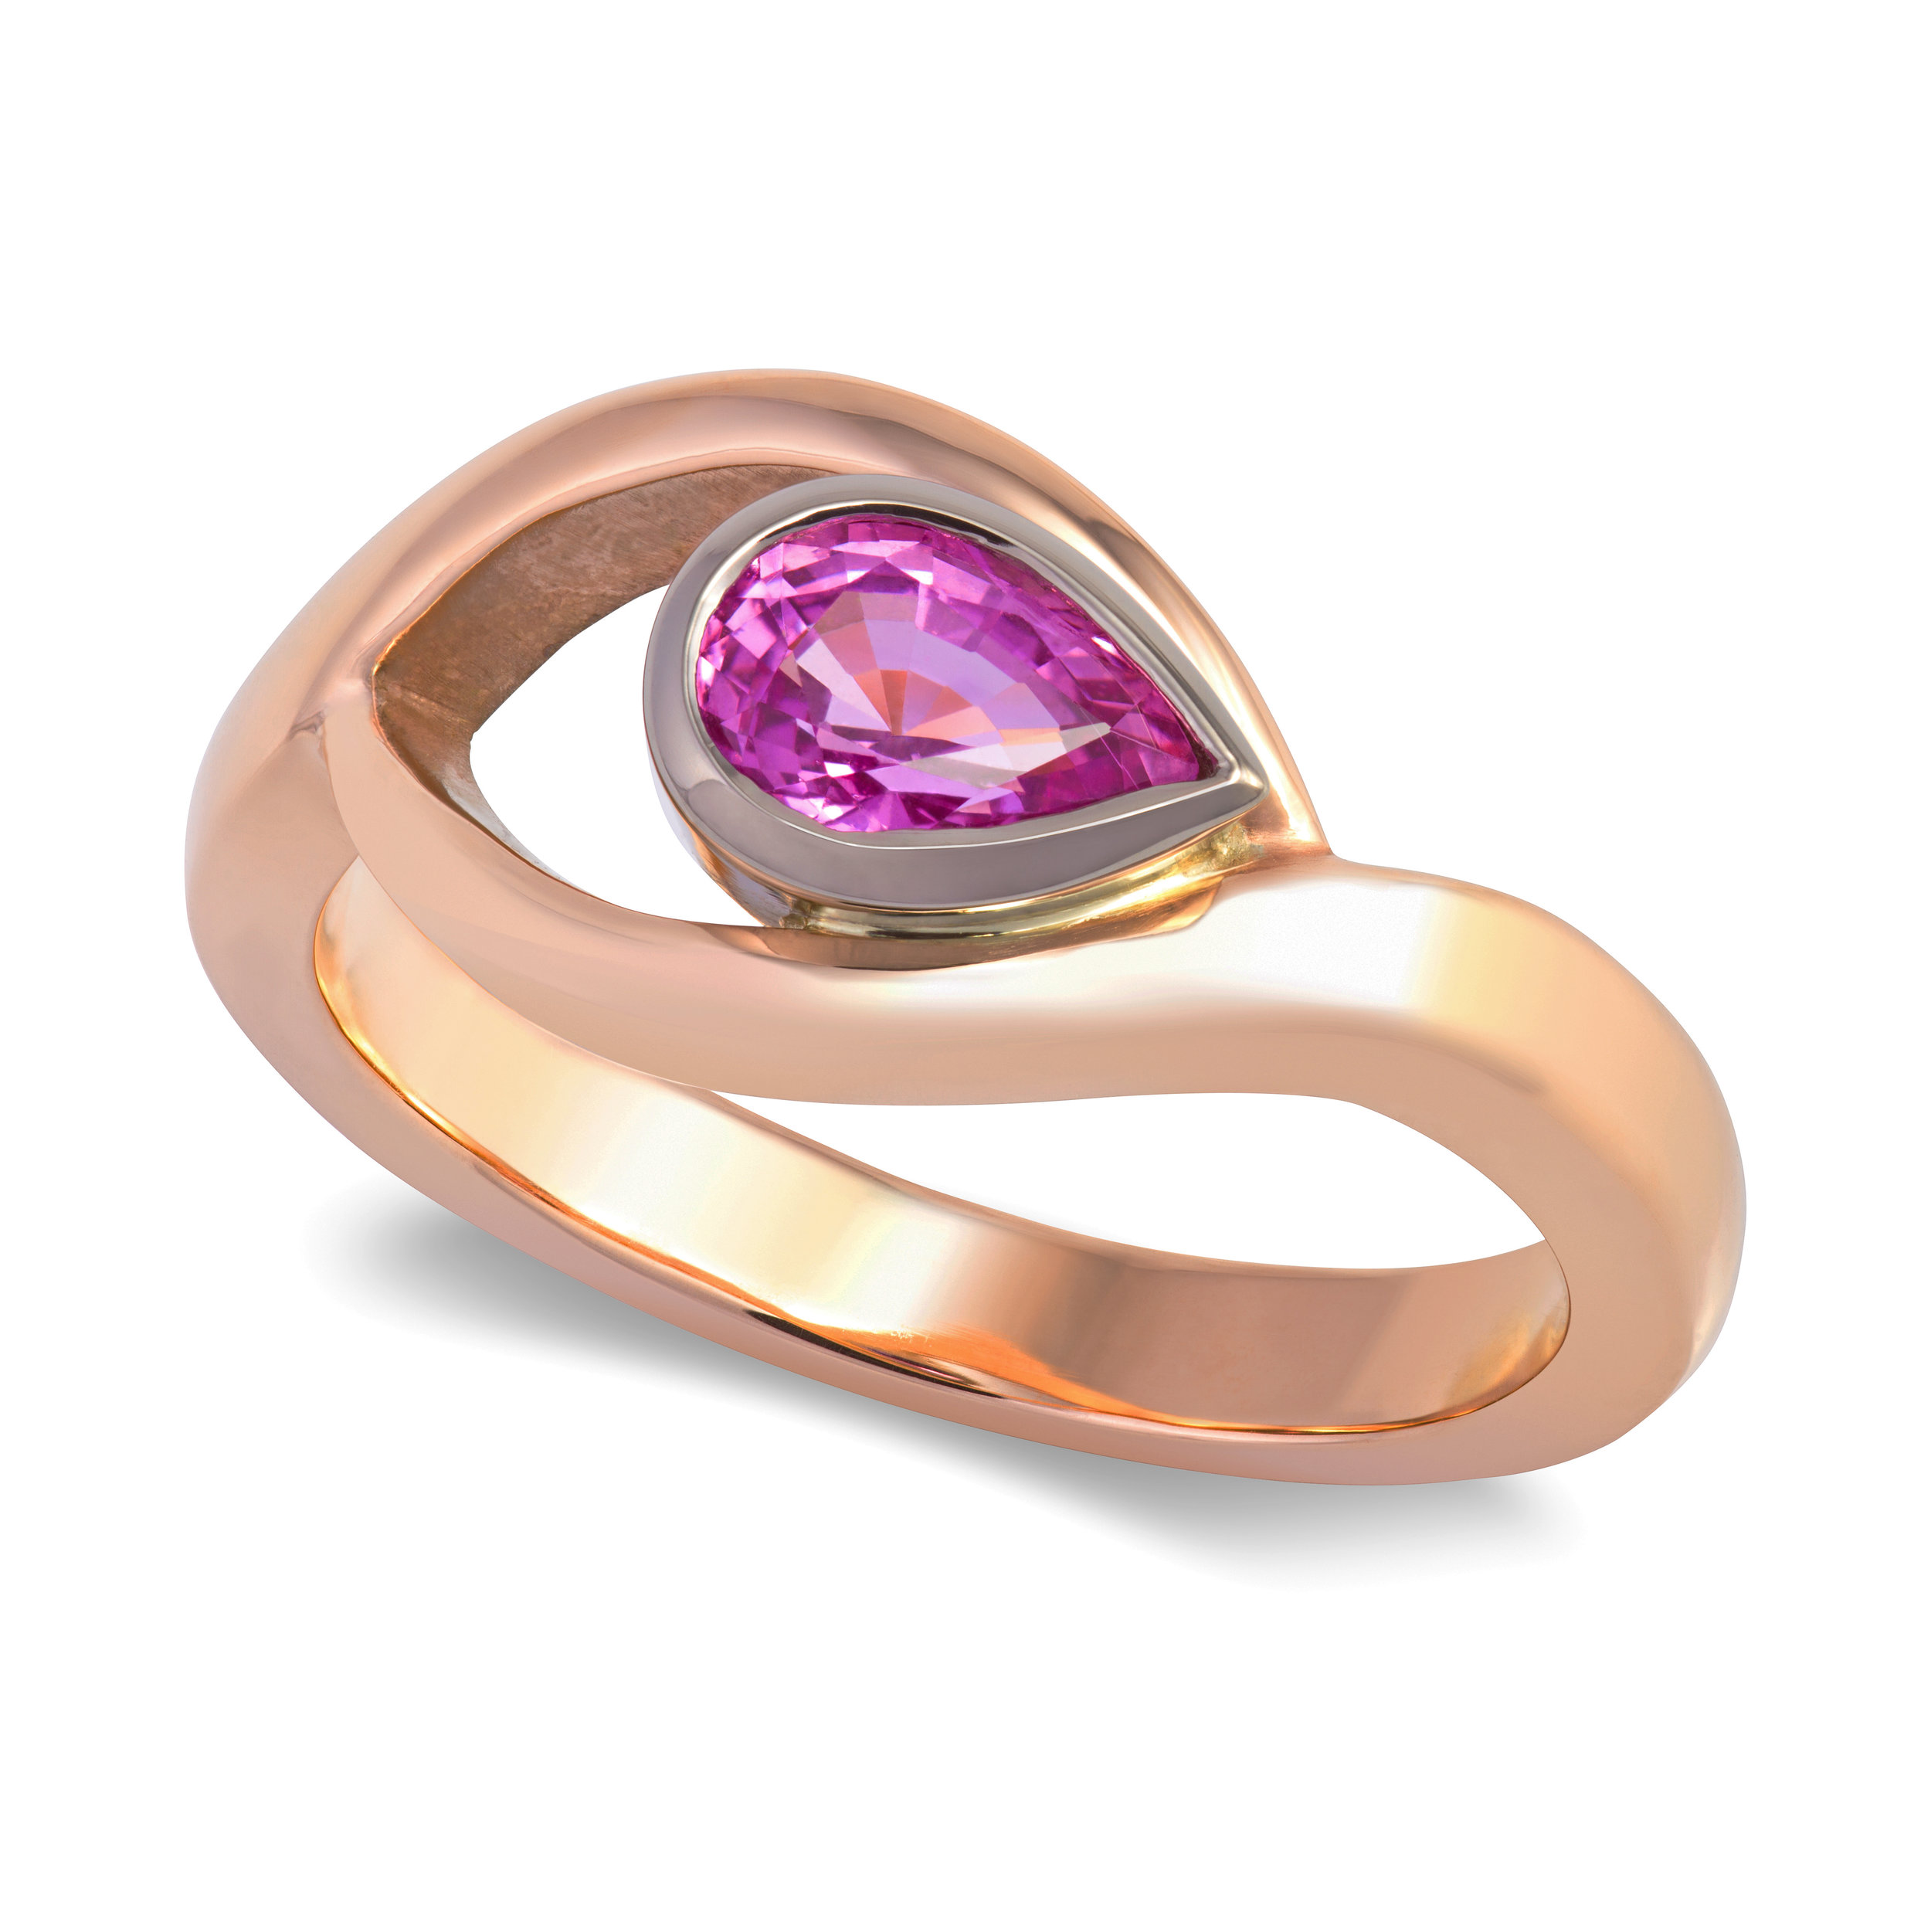 Bespoke 9ct rose gold and pink sapphire engagement ring commission